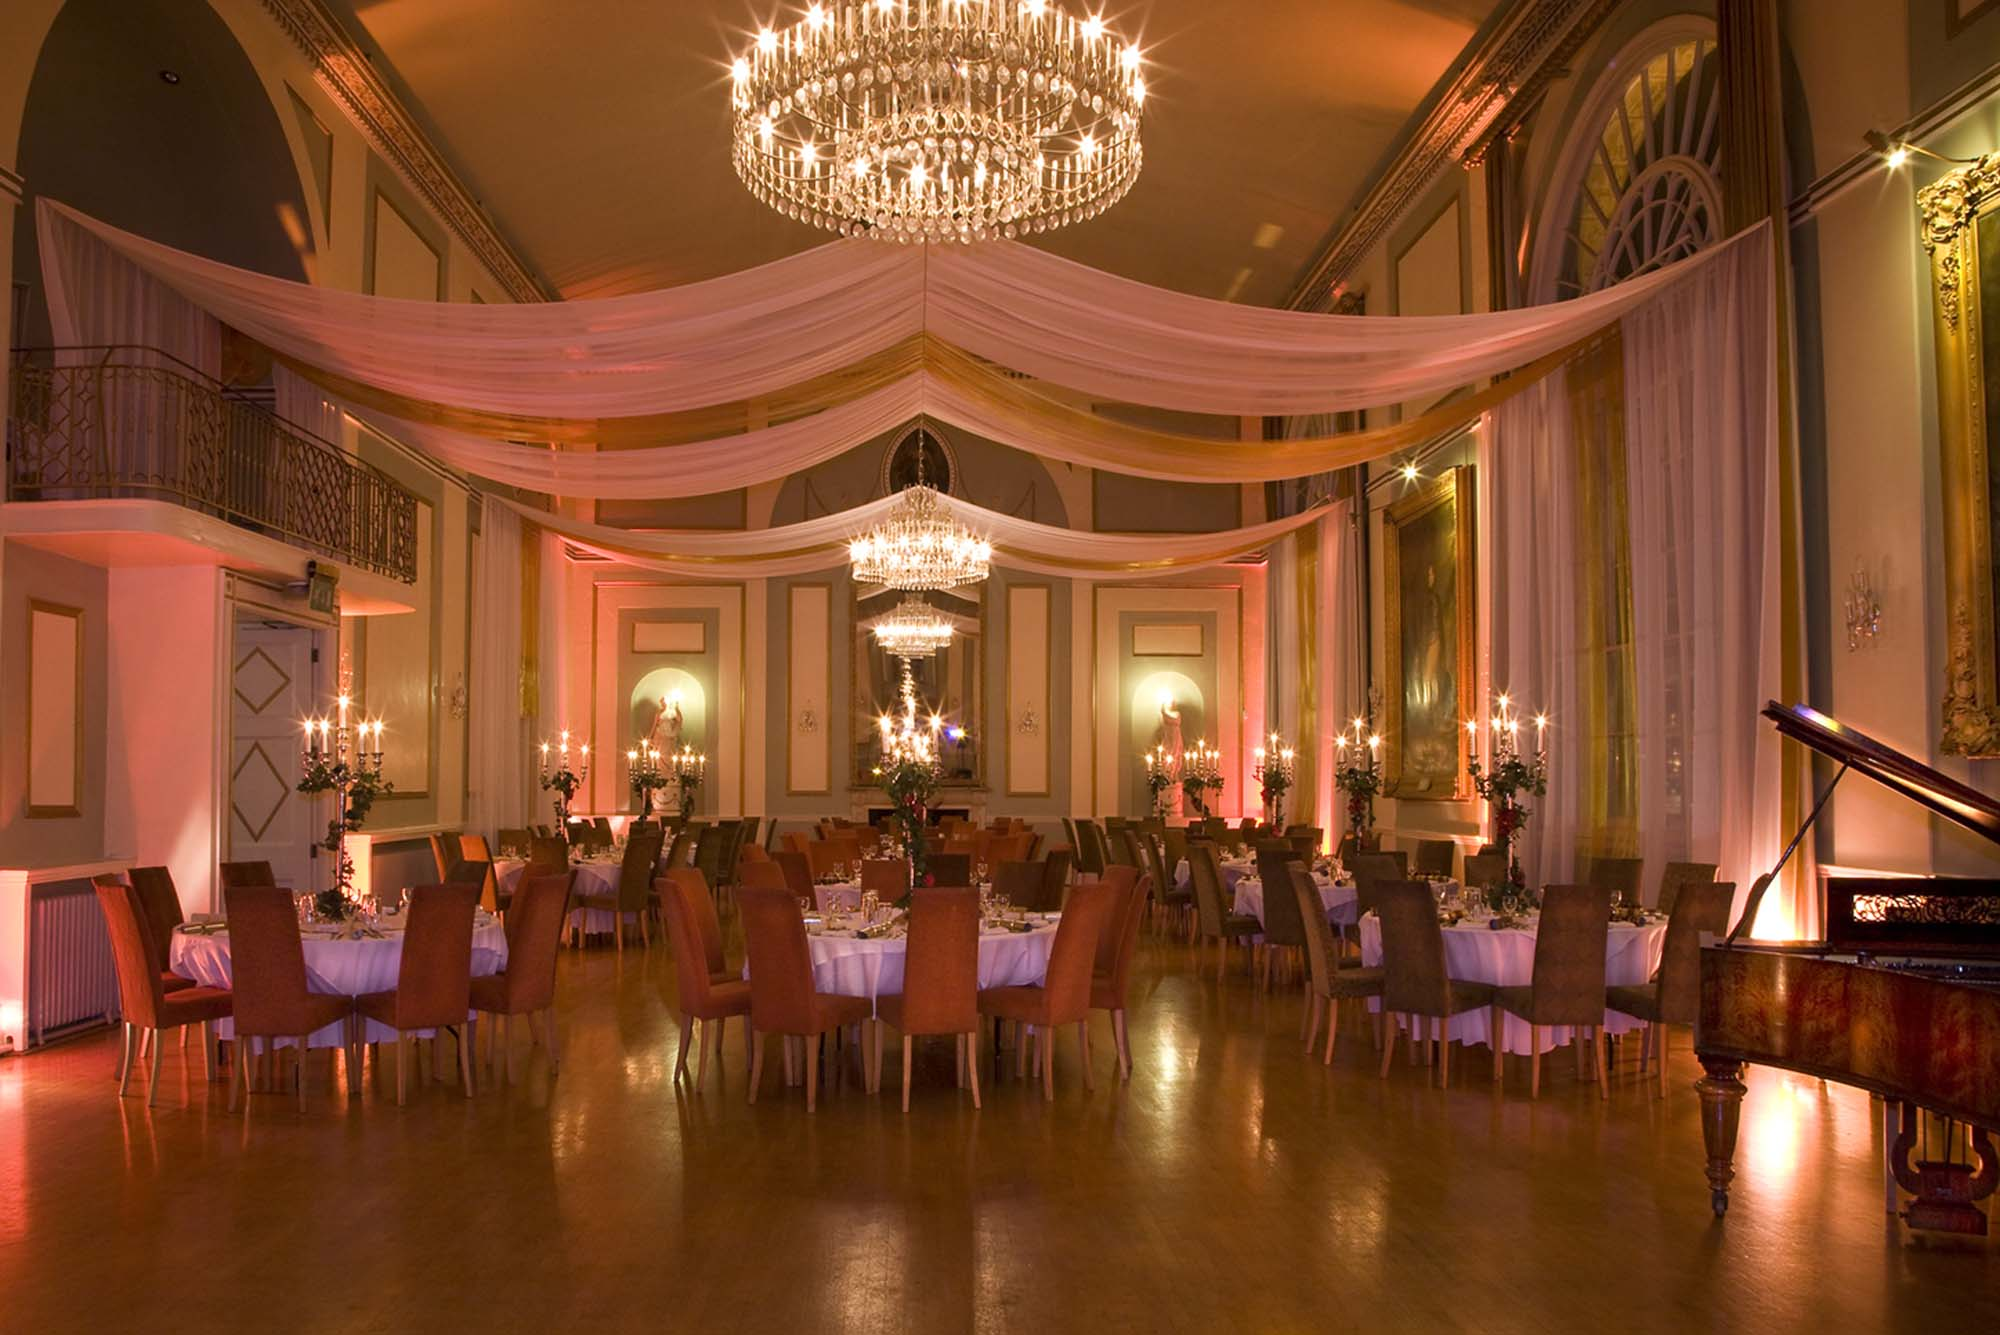 The first floor ballroom today -